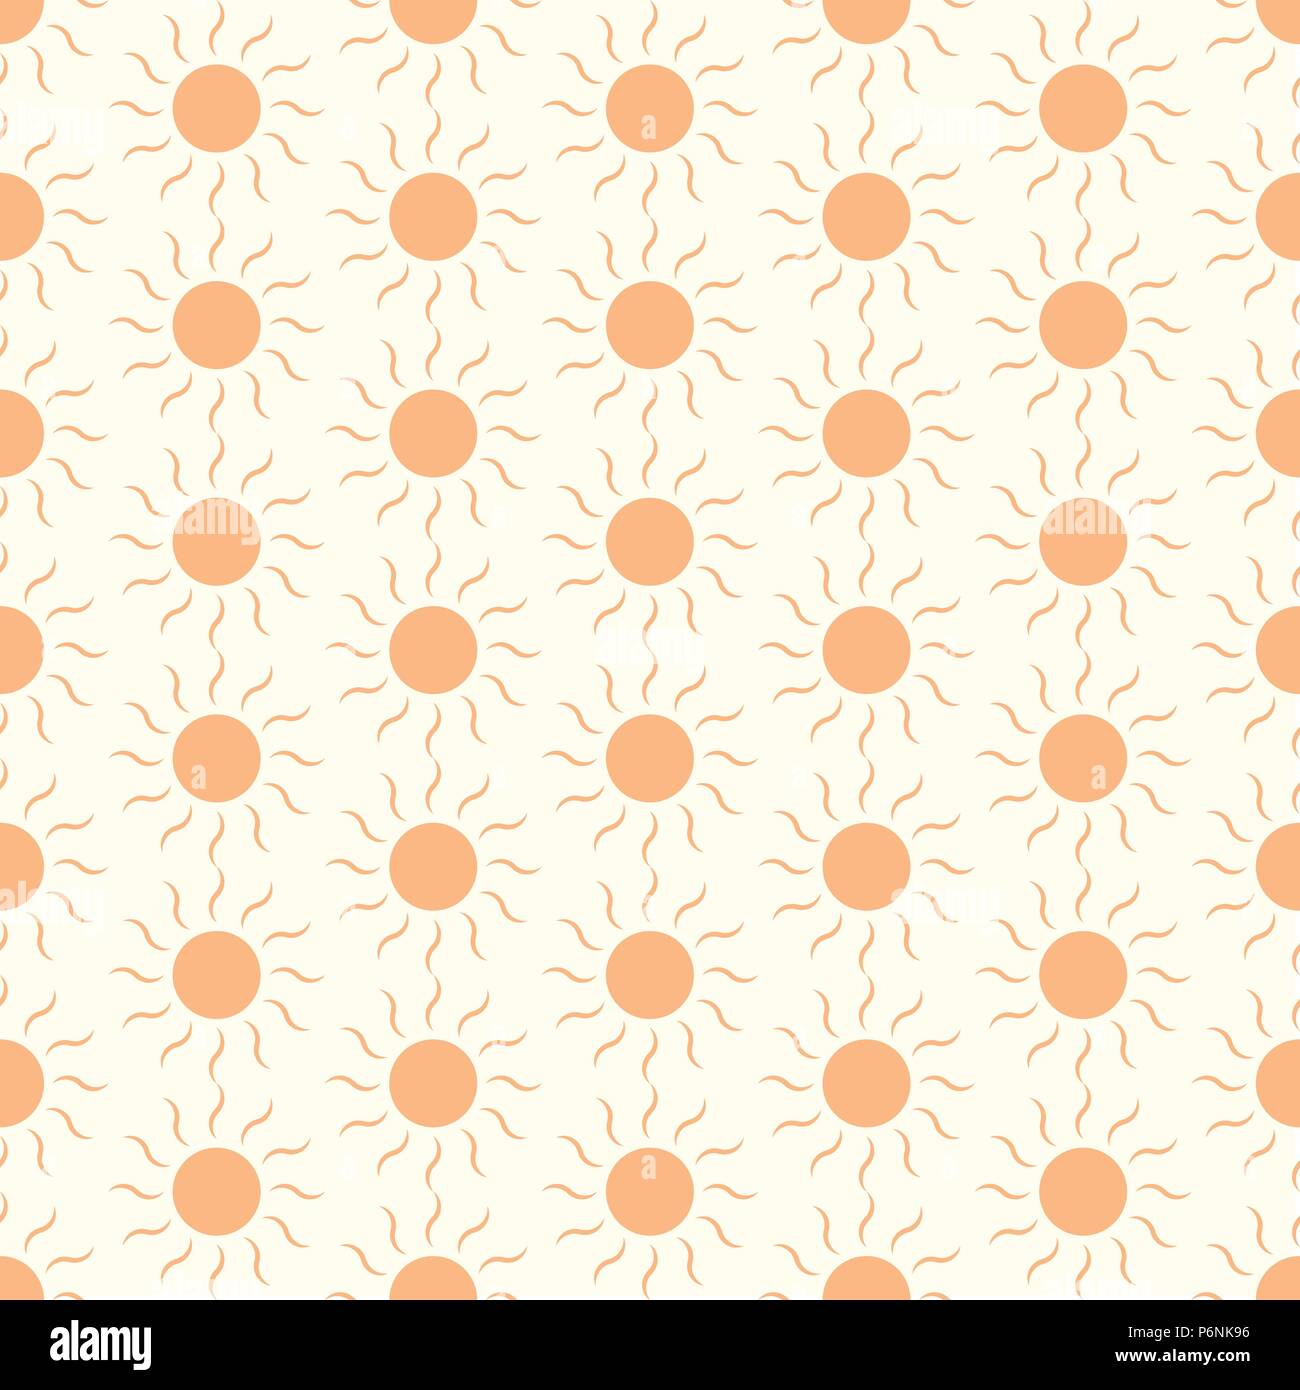 Orange Sun shape seamless pattern on pastel color. Circle and swirl in sweet style for abstract or graphic design - Stock Vector